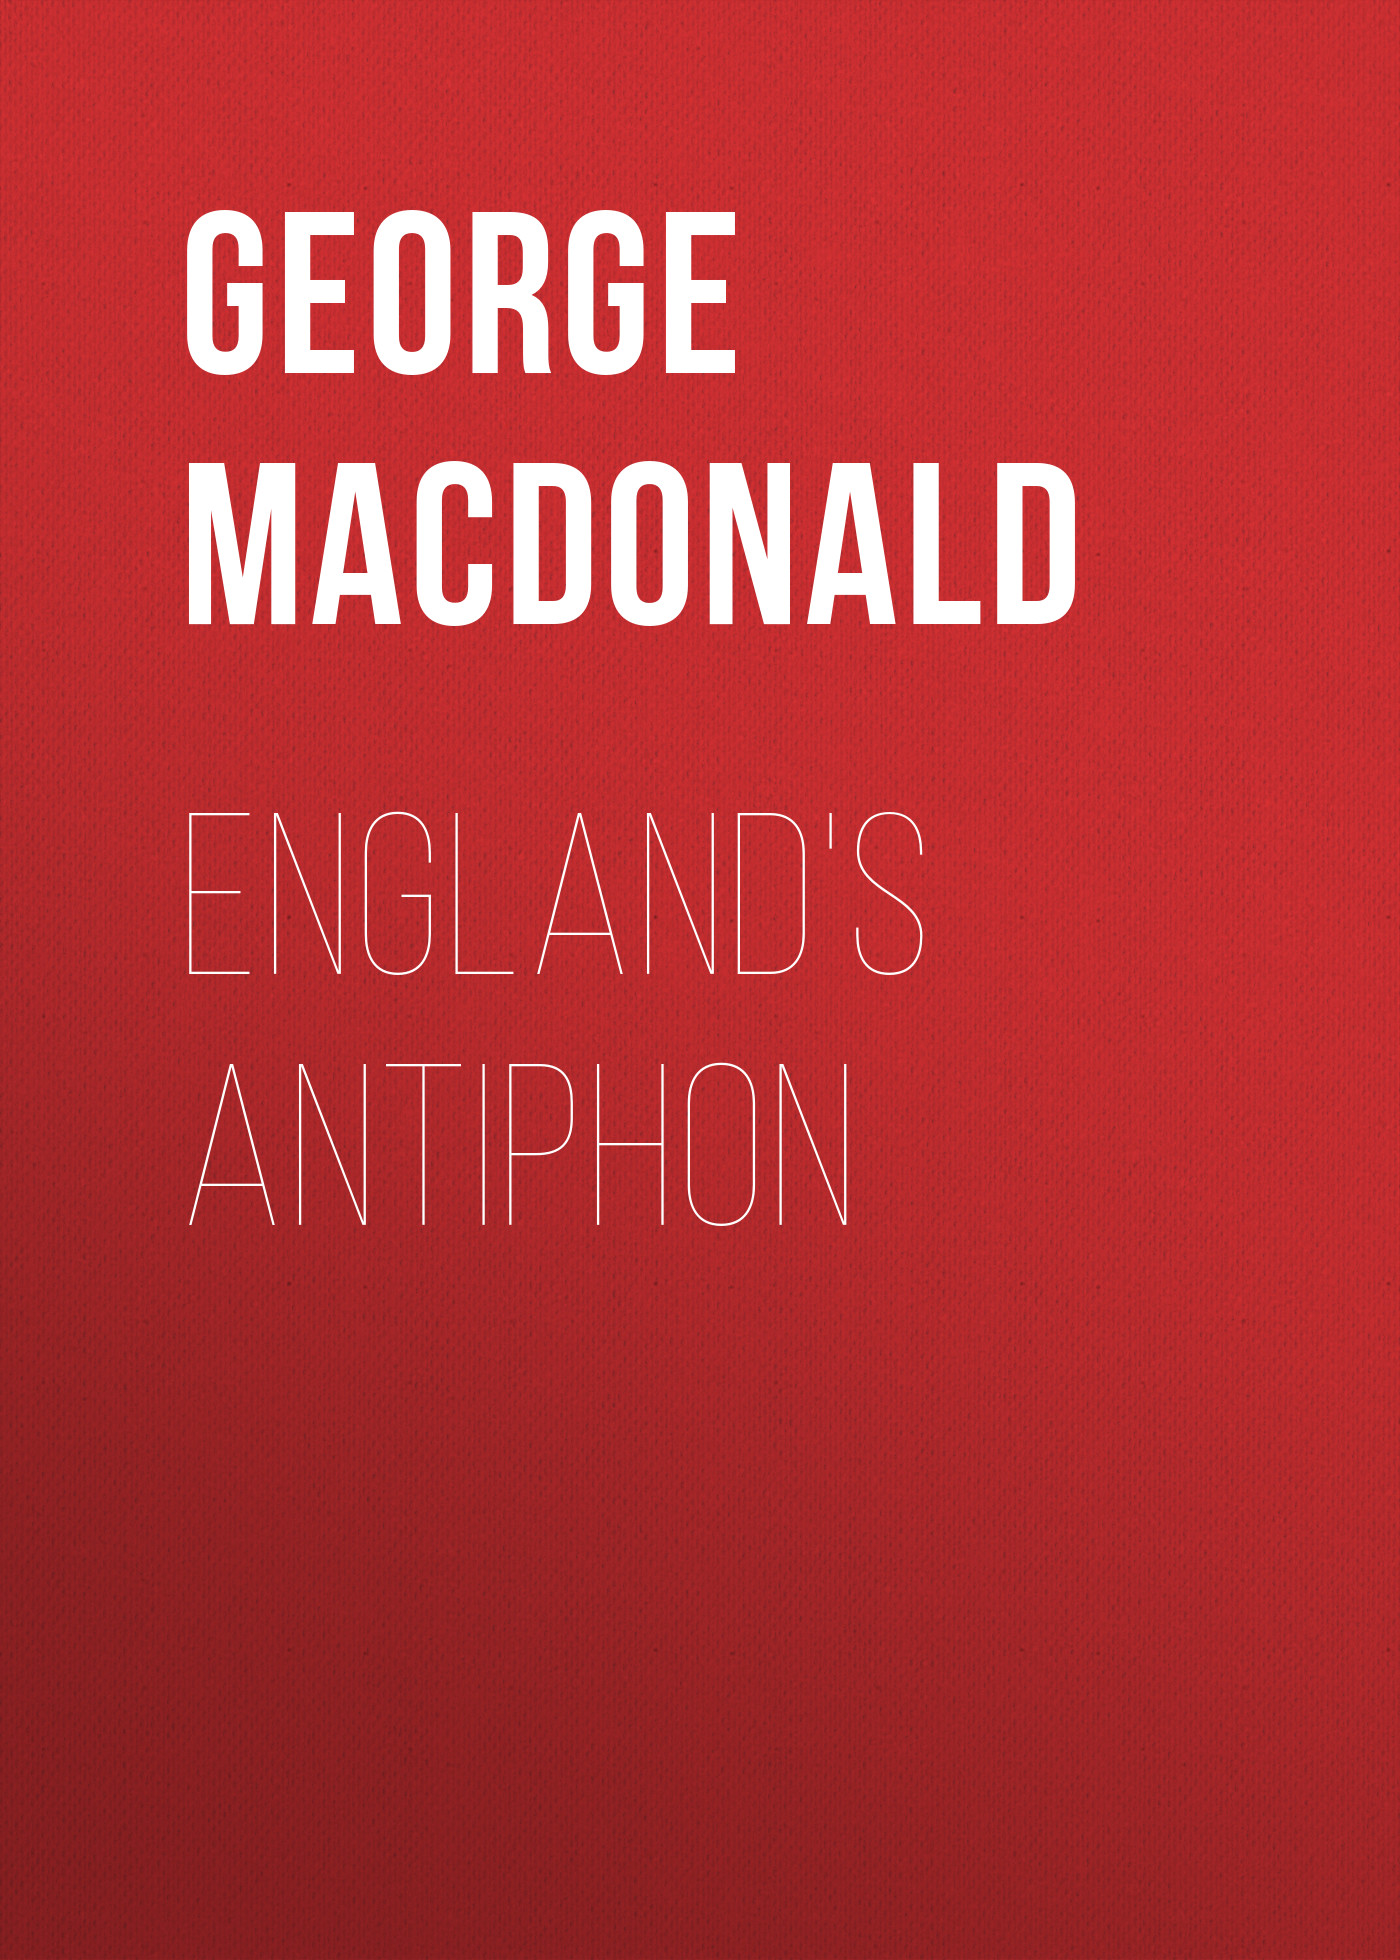 все цены на George MacDonald England's Antiphon онлайн